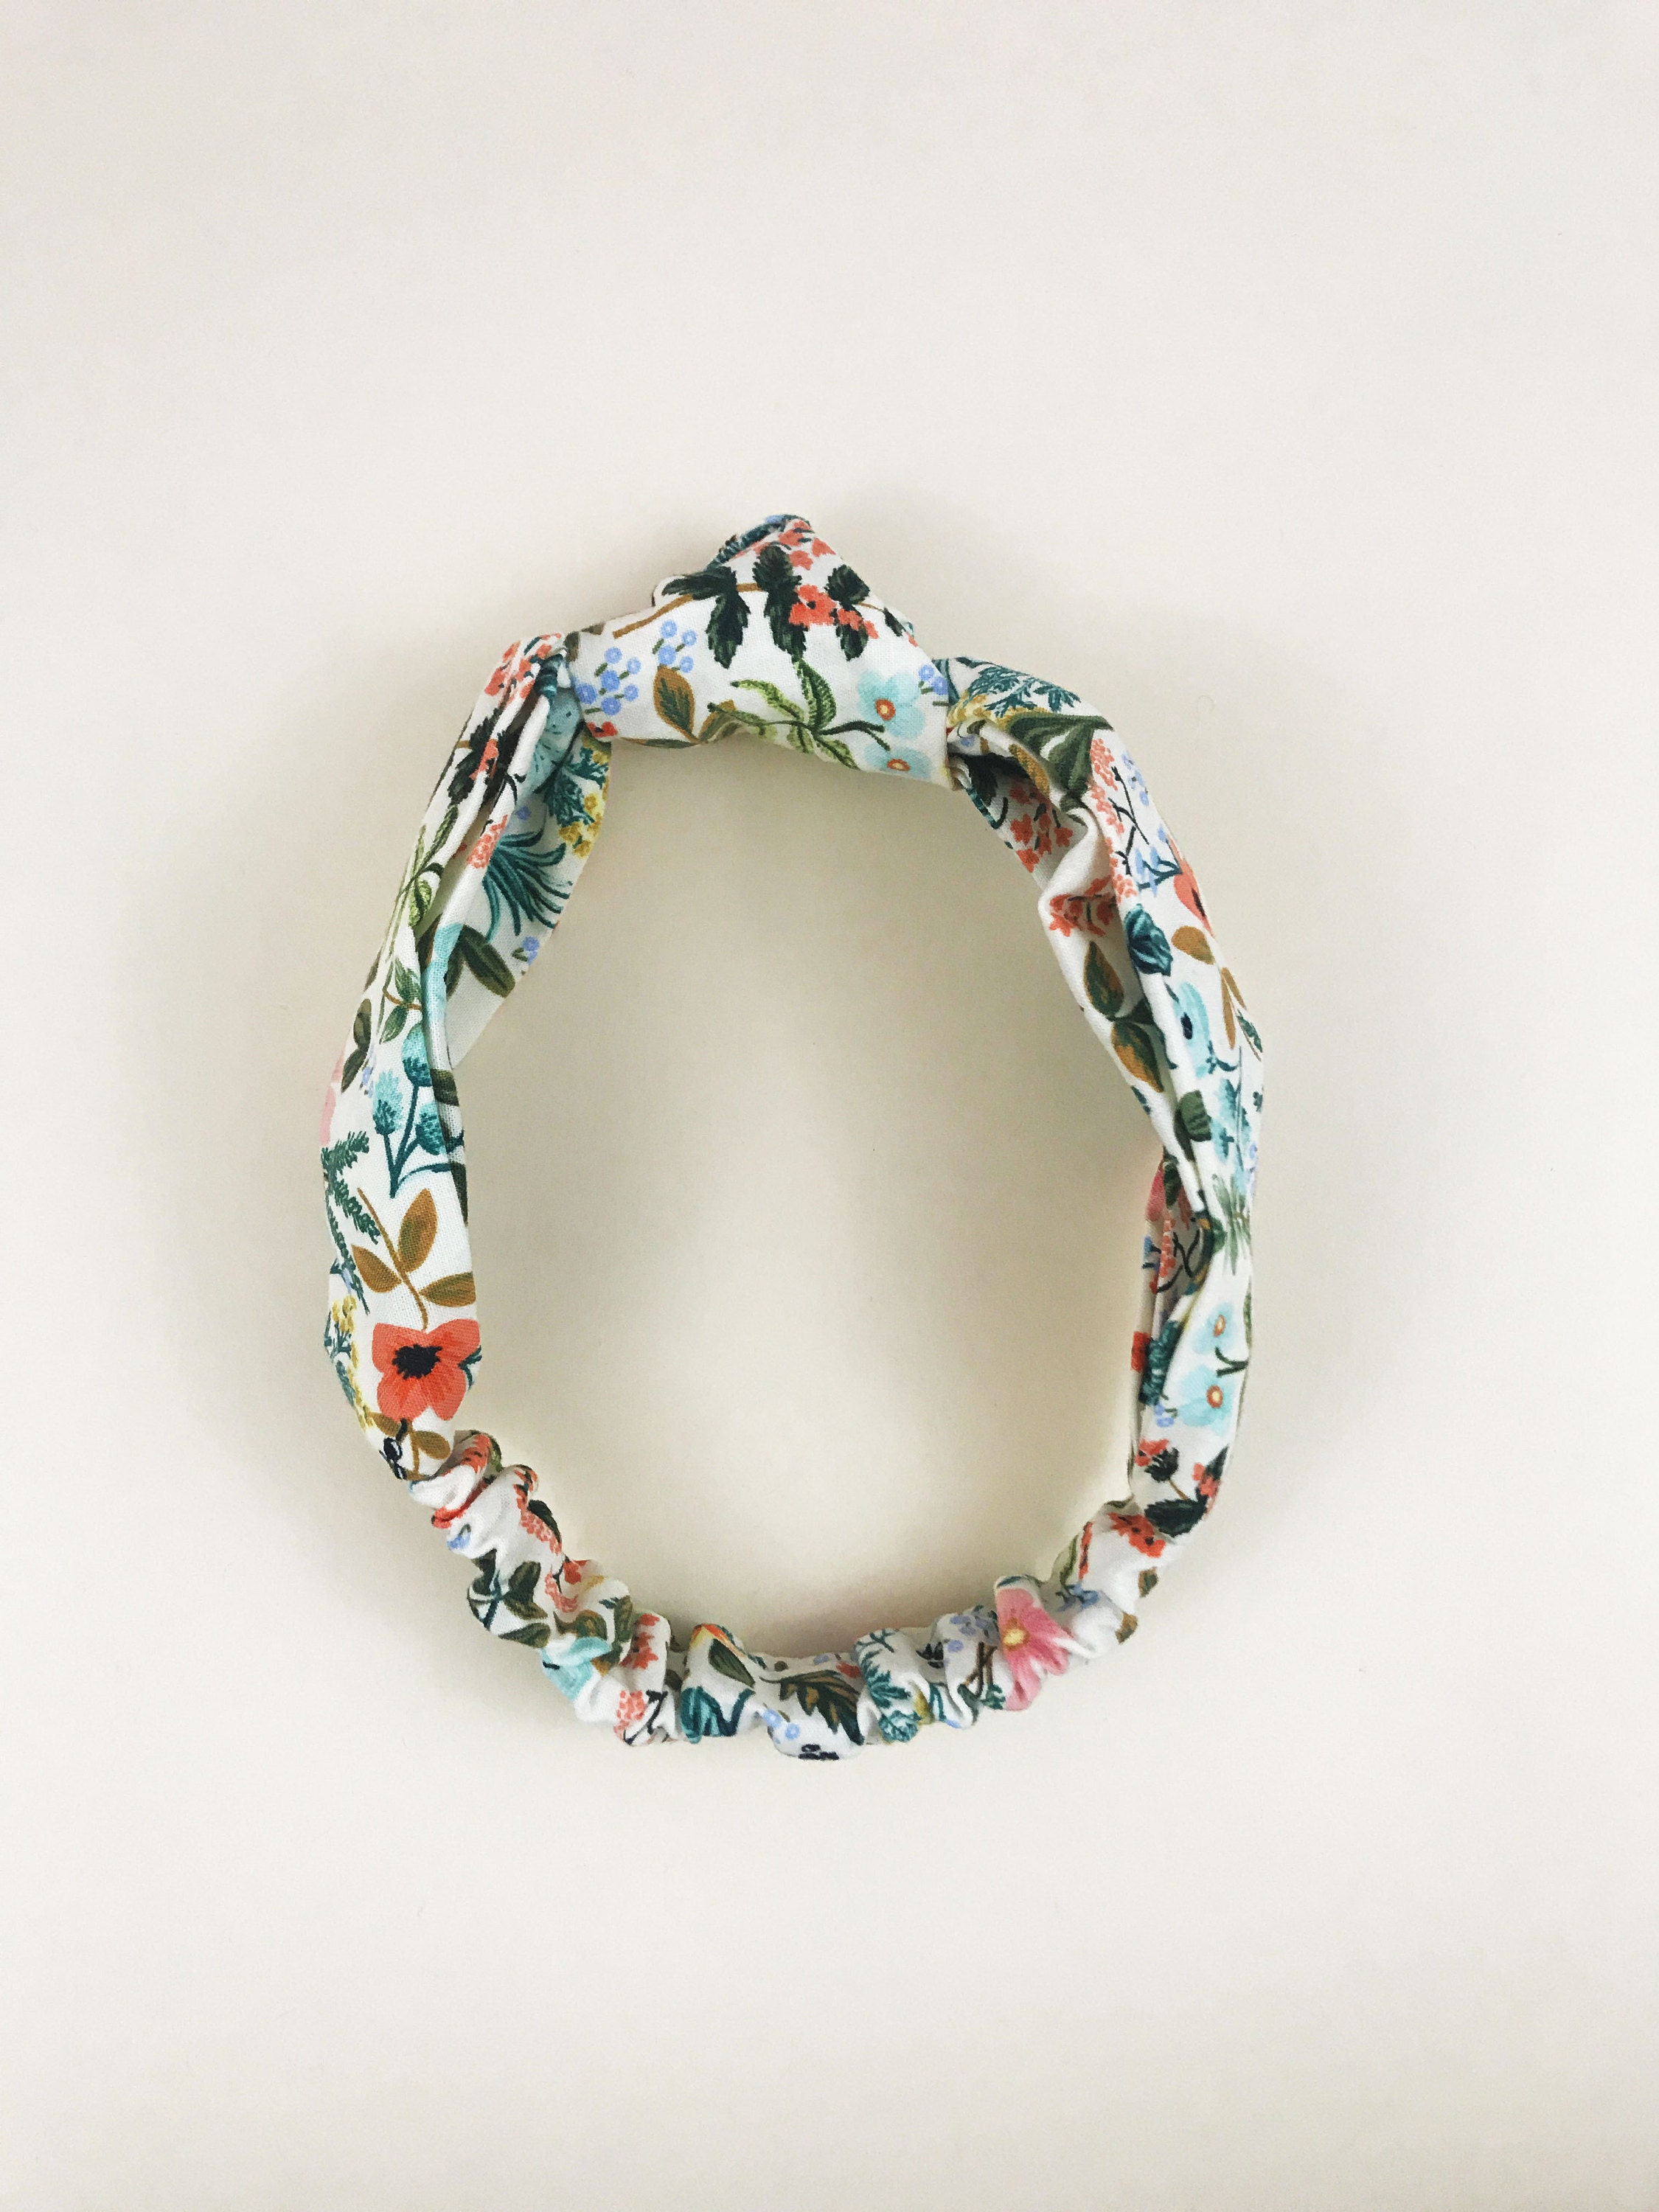 Cream floral knotted headbands.